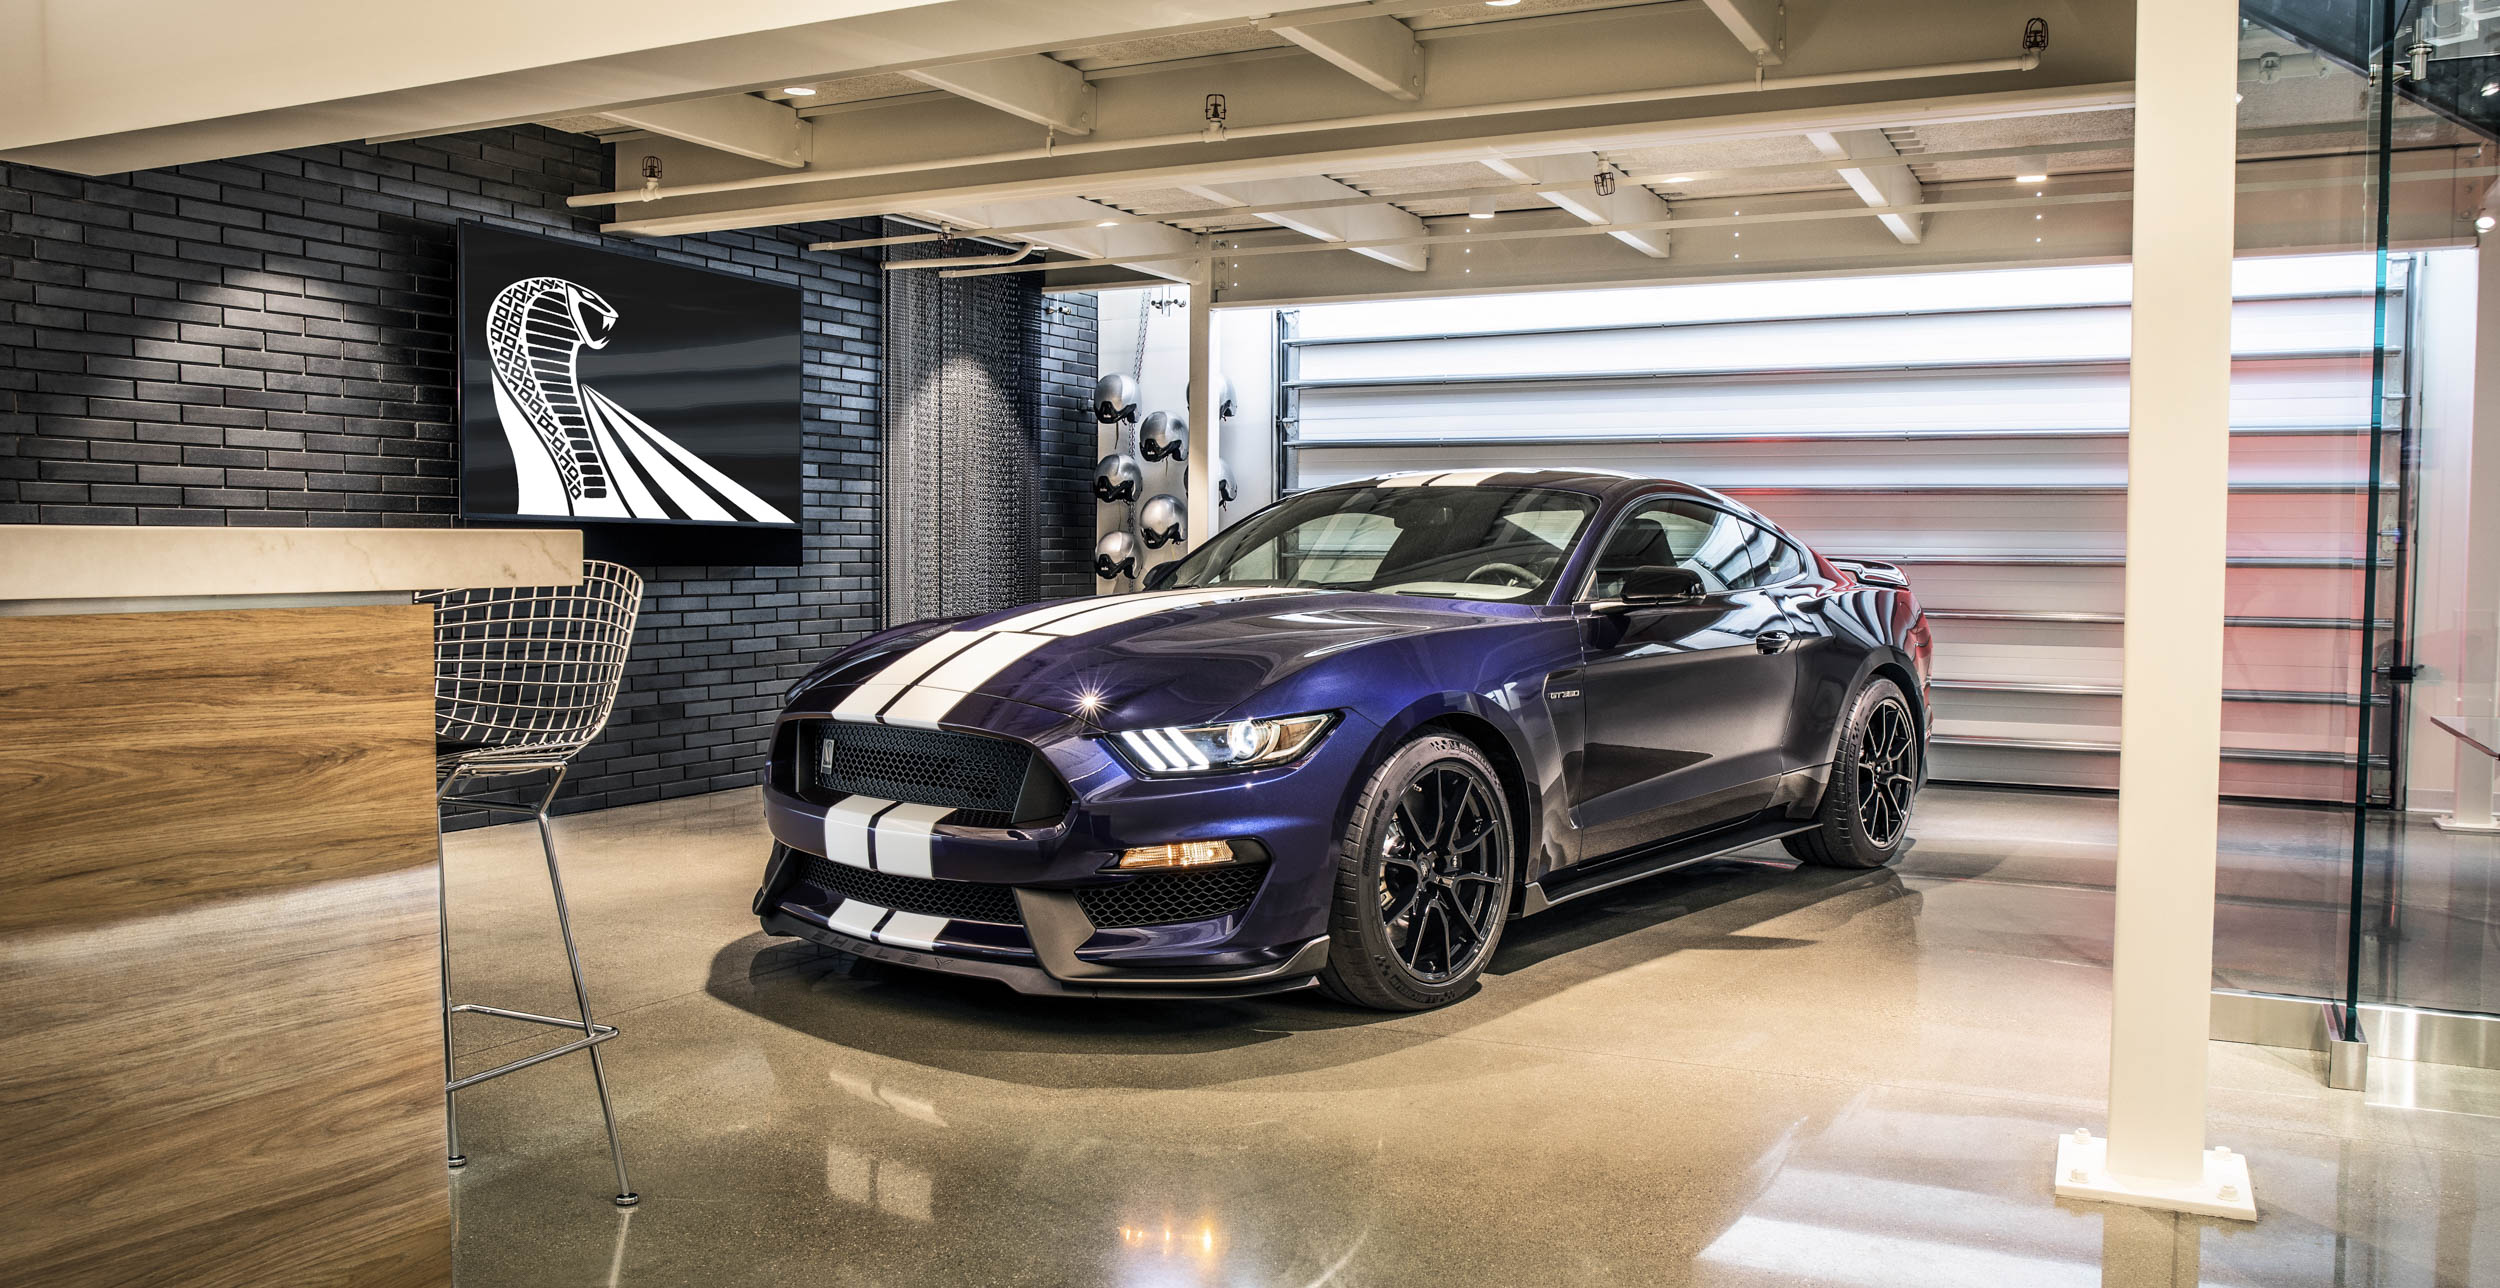 2019 Shelby GT350 in a garage